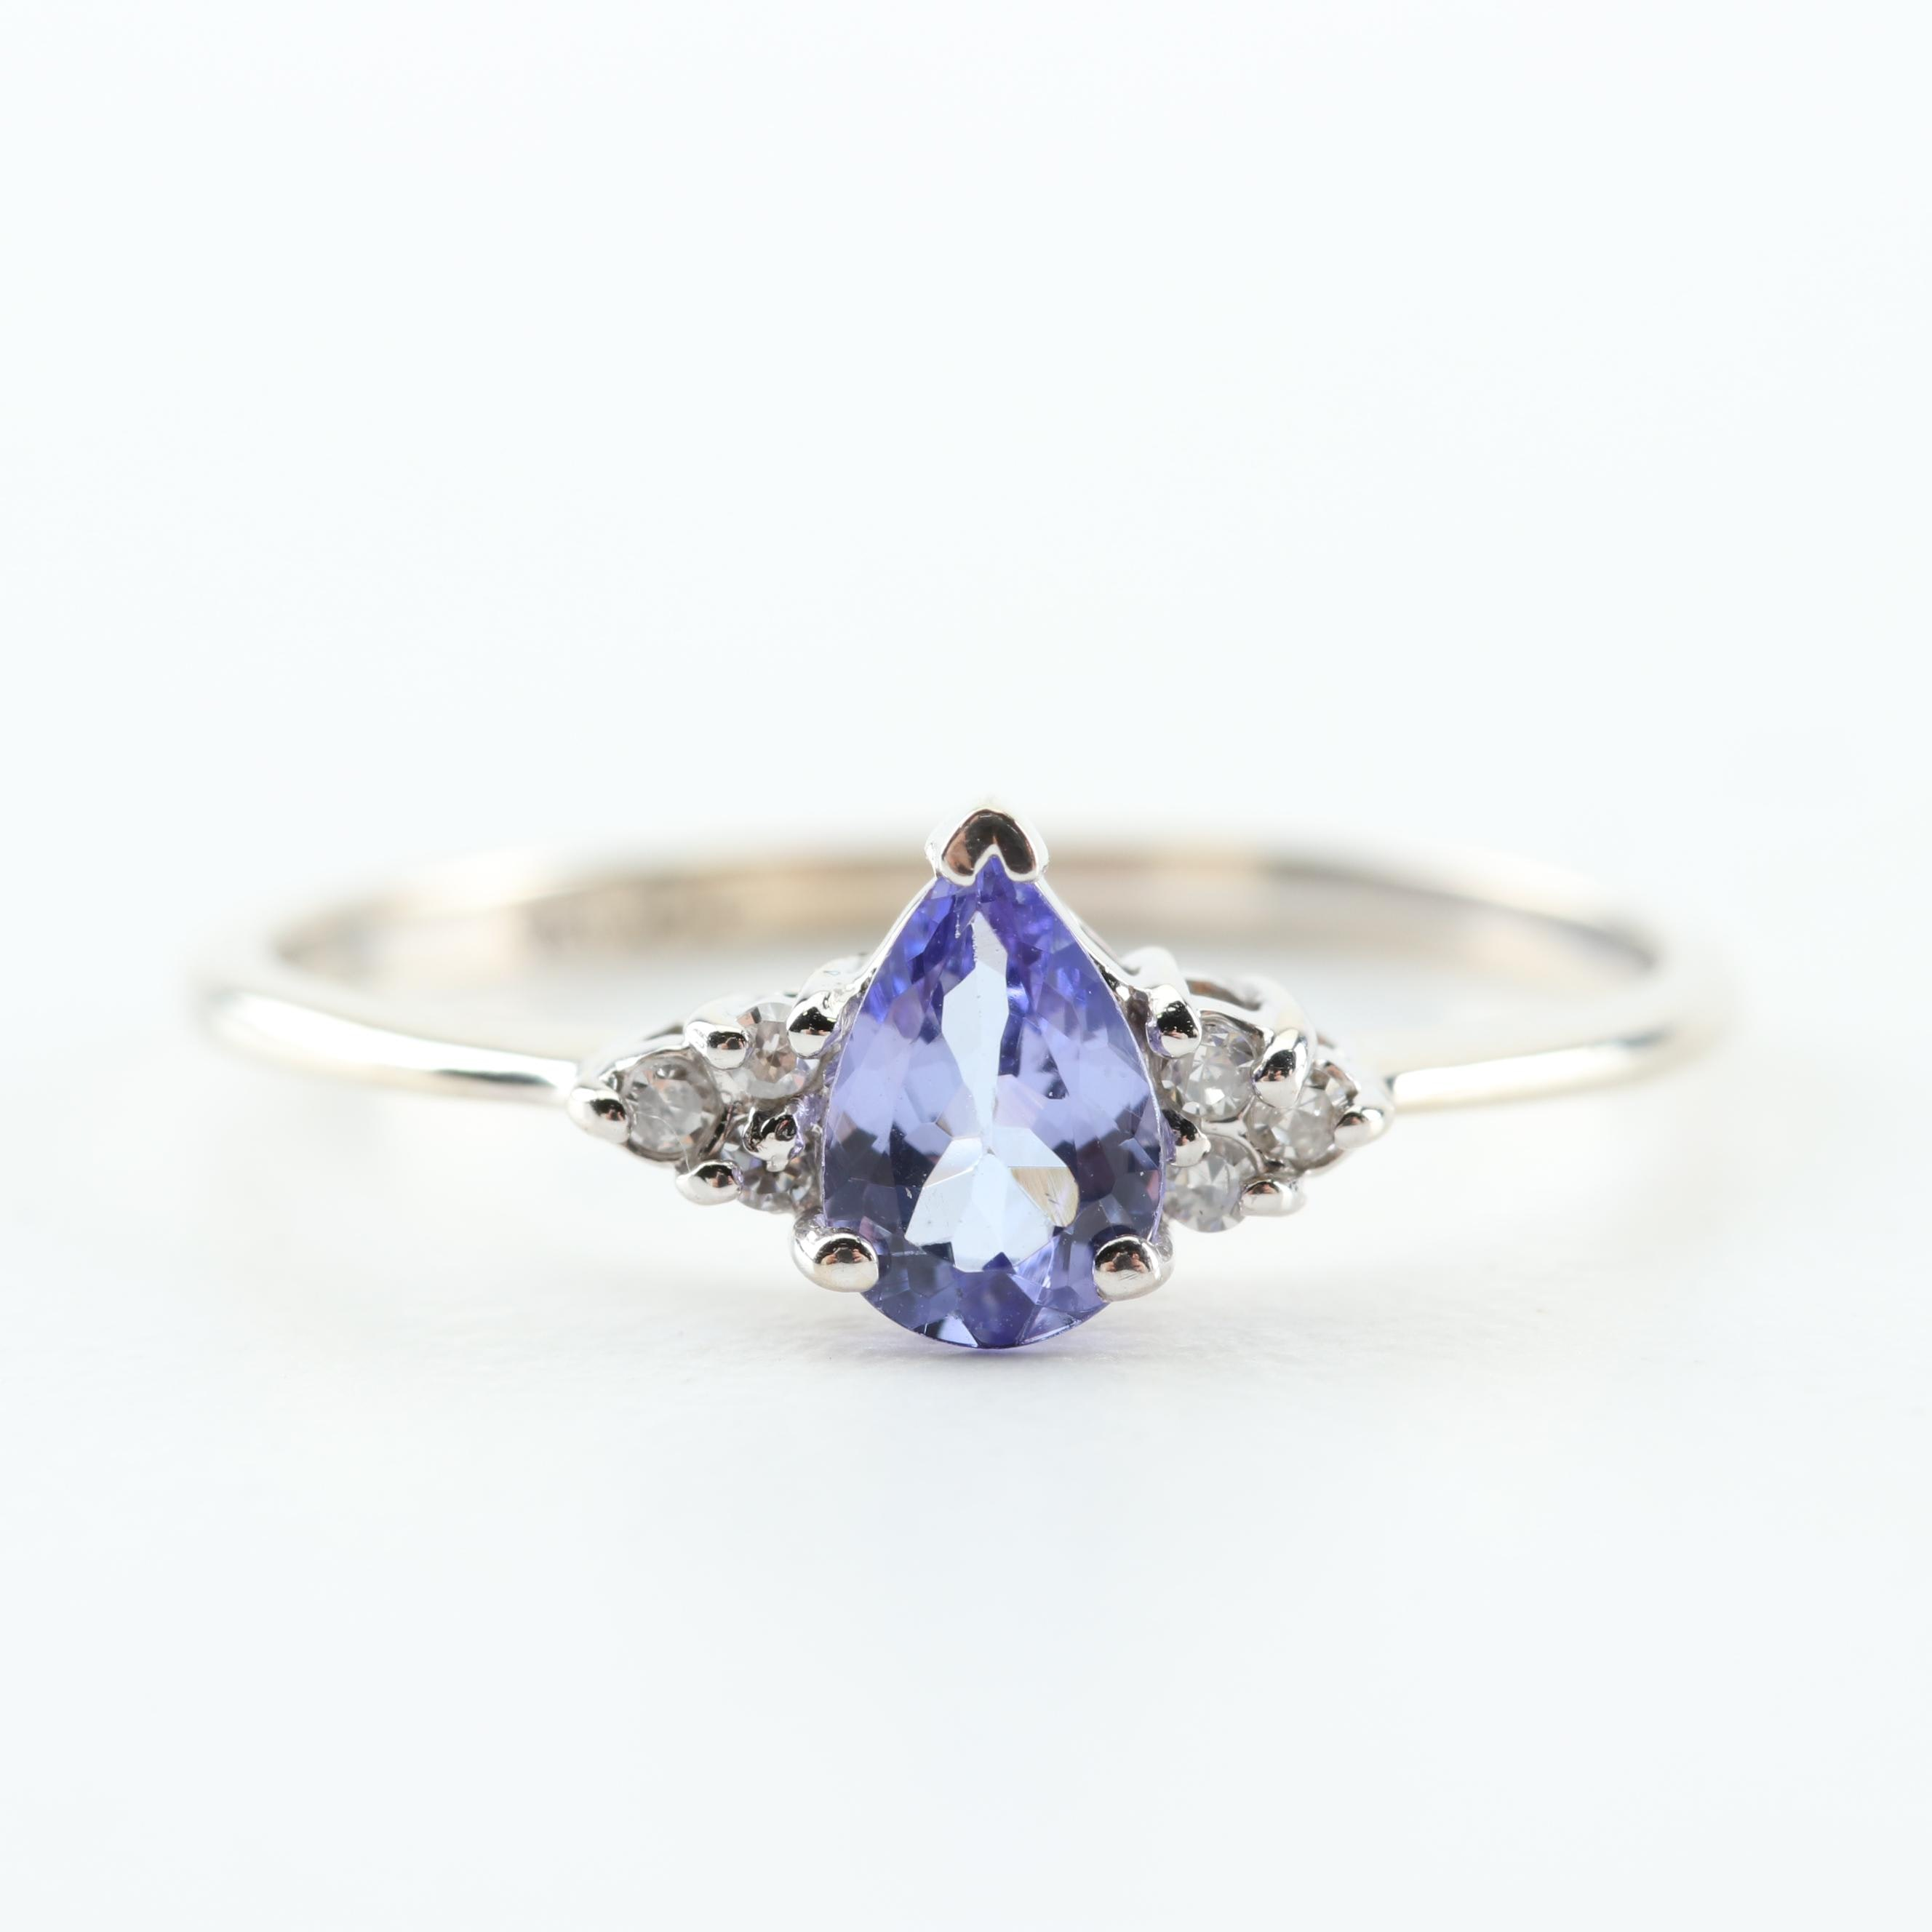 10K White Gold, Tanzanite, and Diamond Ring